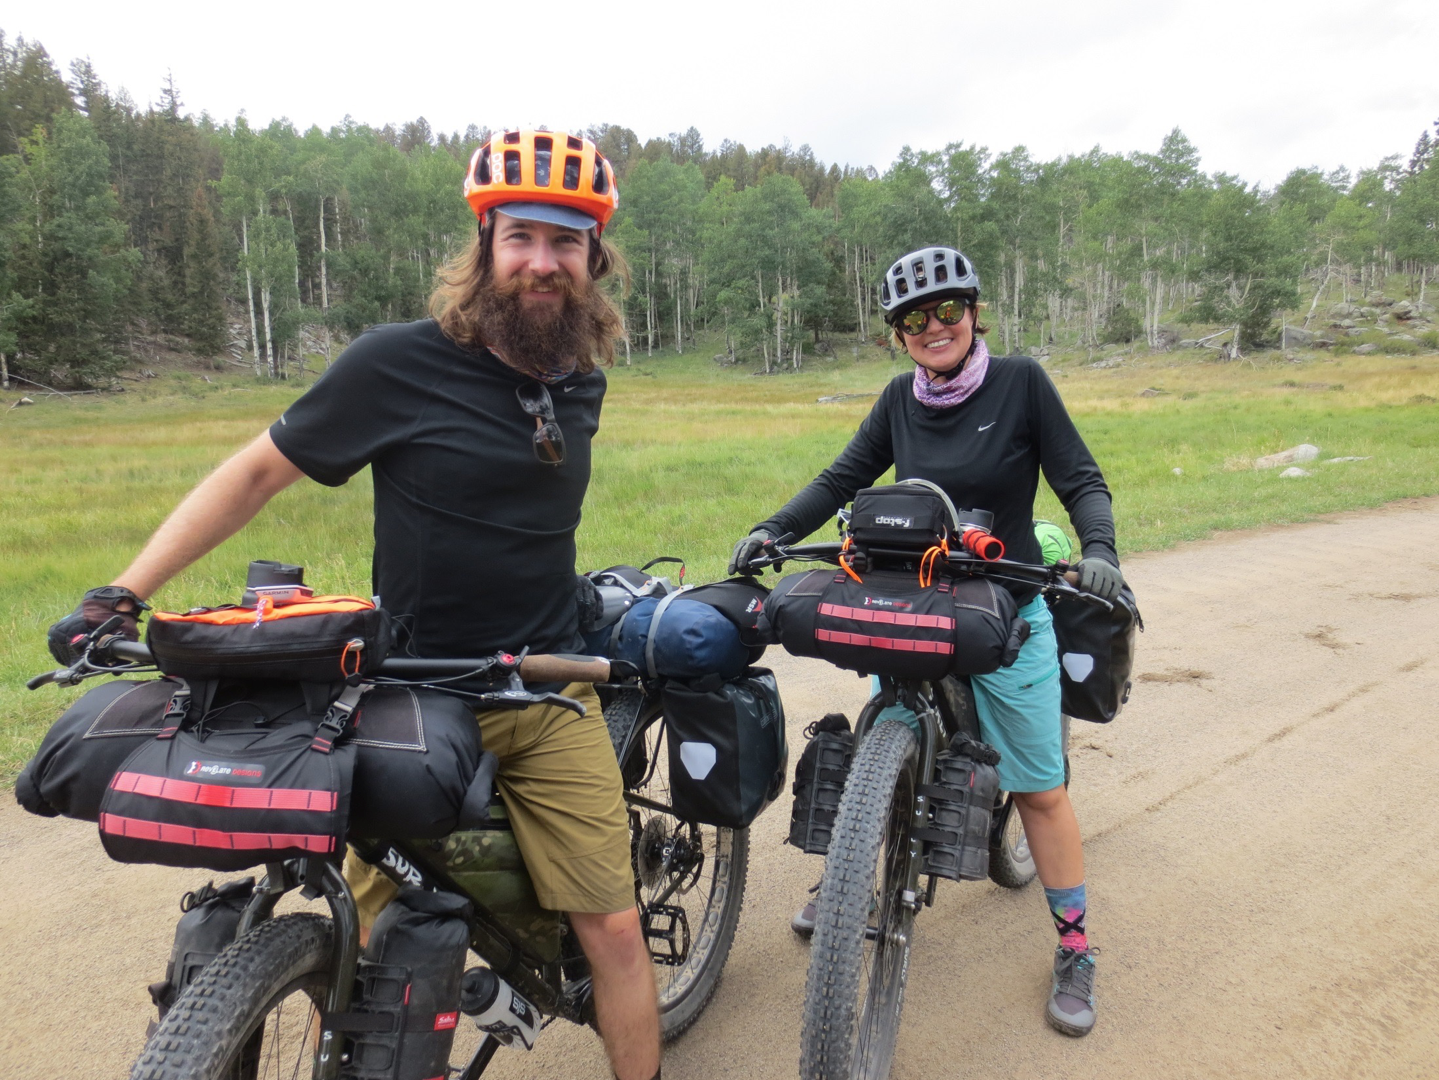 These were the only other two people she saw on bikes that week, and they were on ECR's, too.